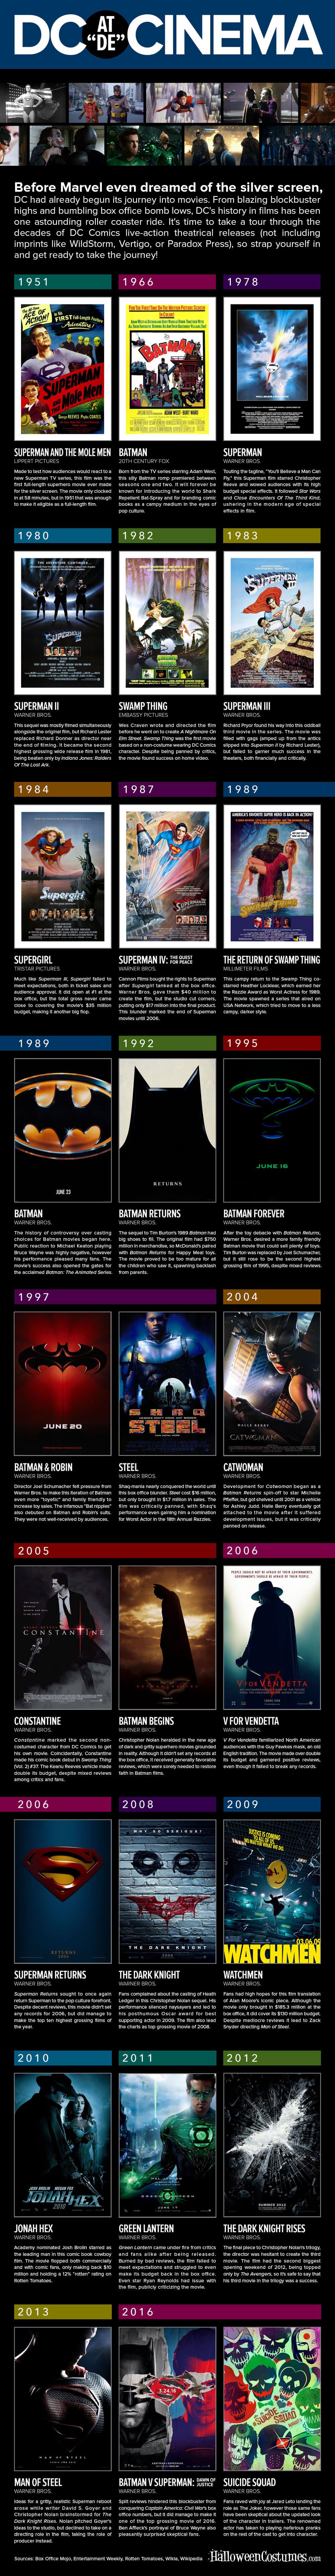 DC Movie Infographic